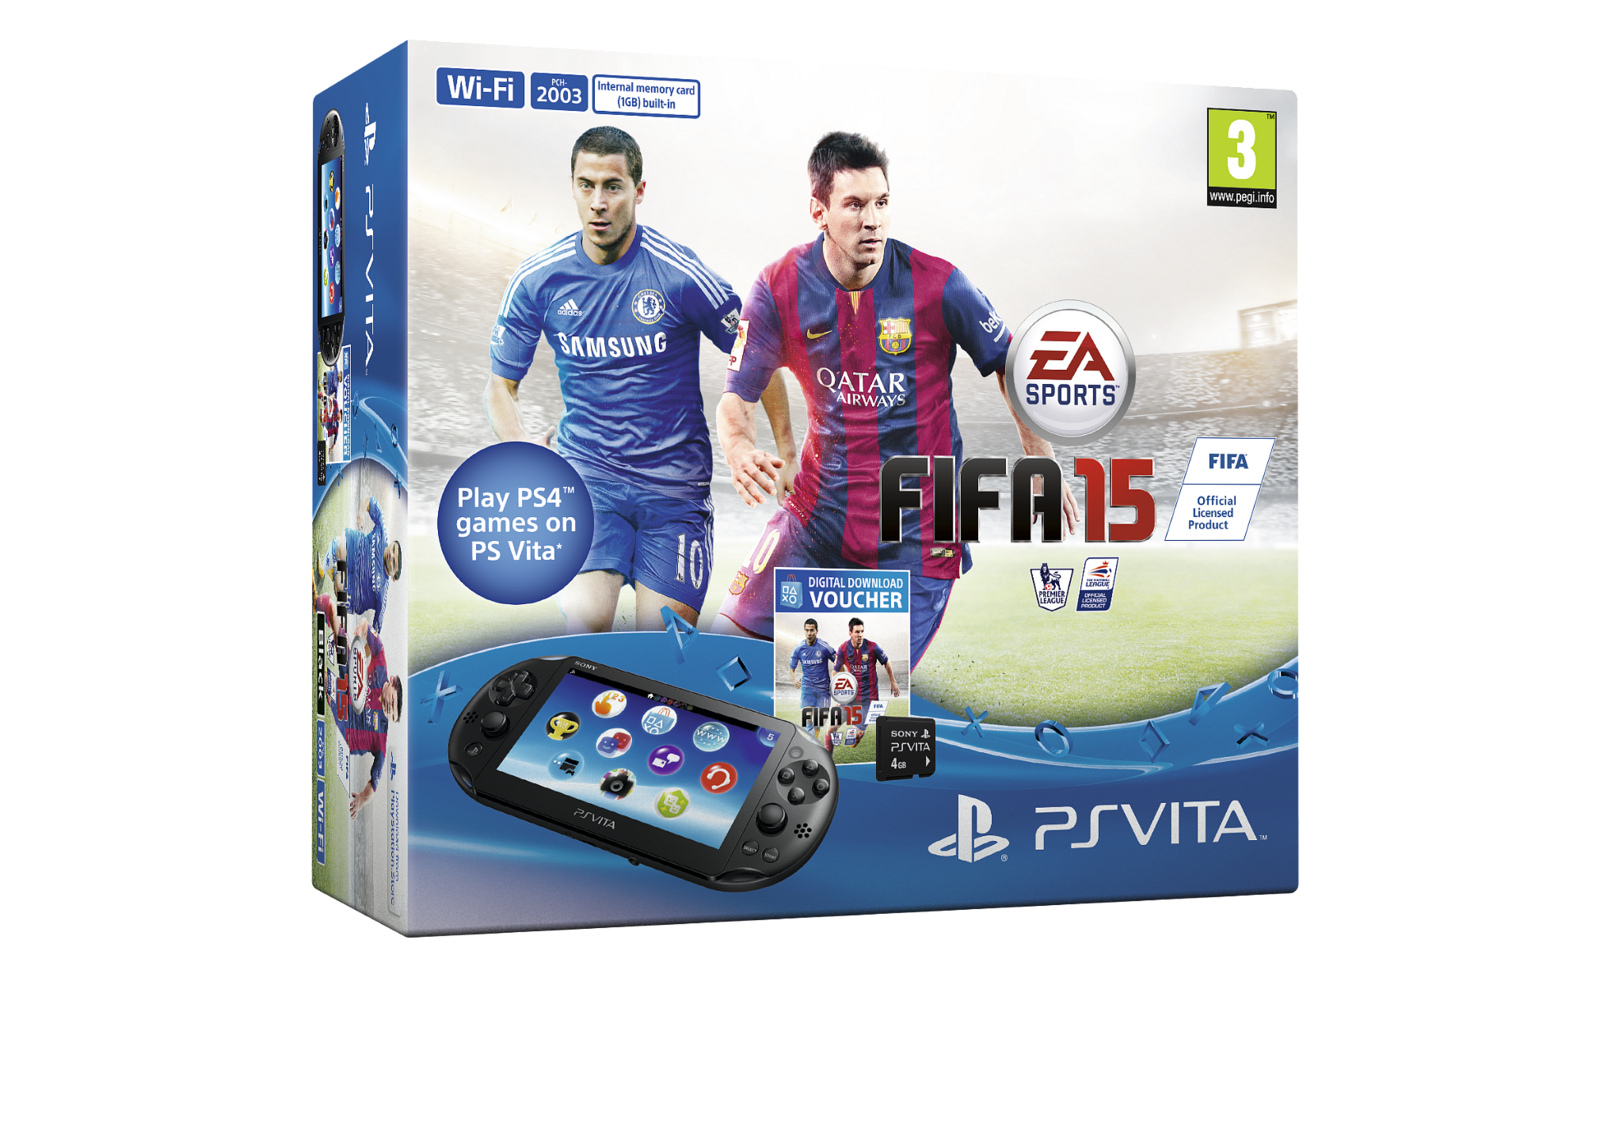 FIFA 15 PS Vita bundle is heading to Europe